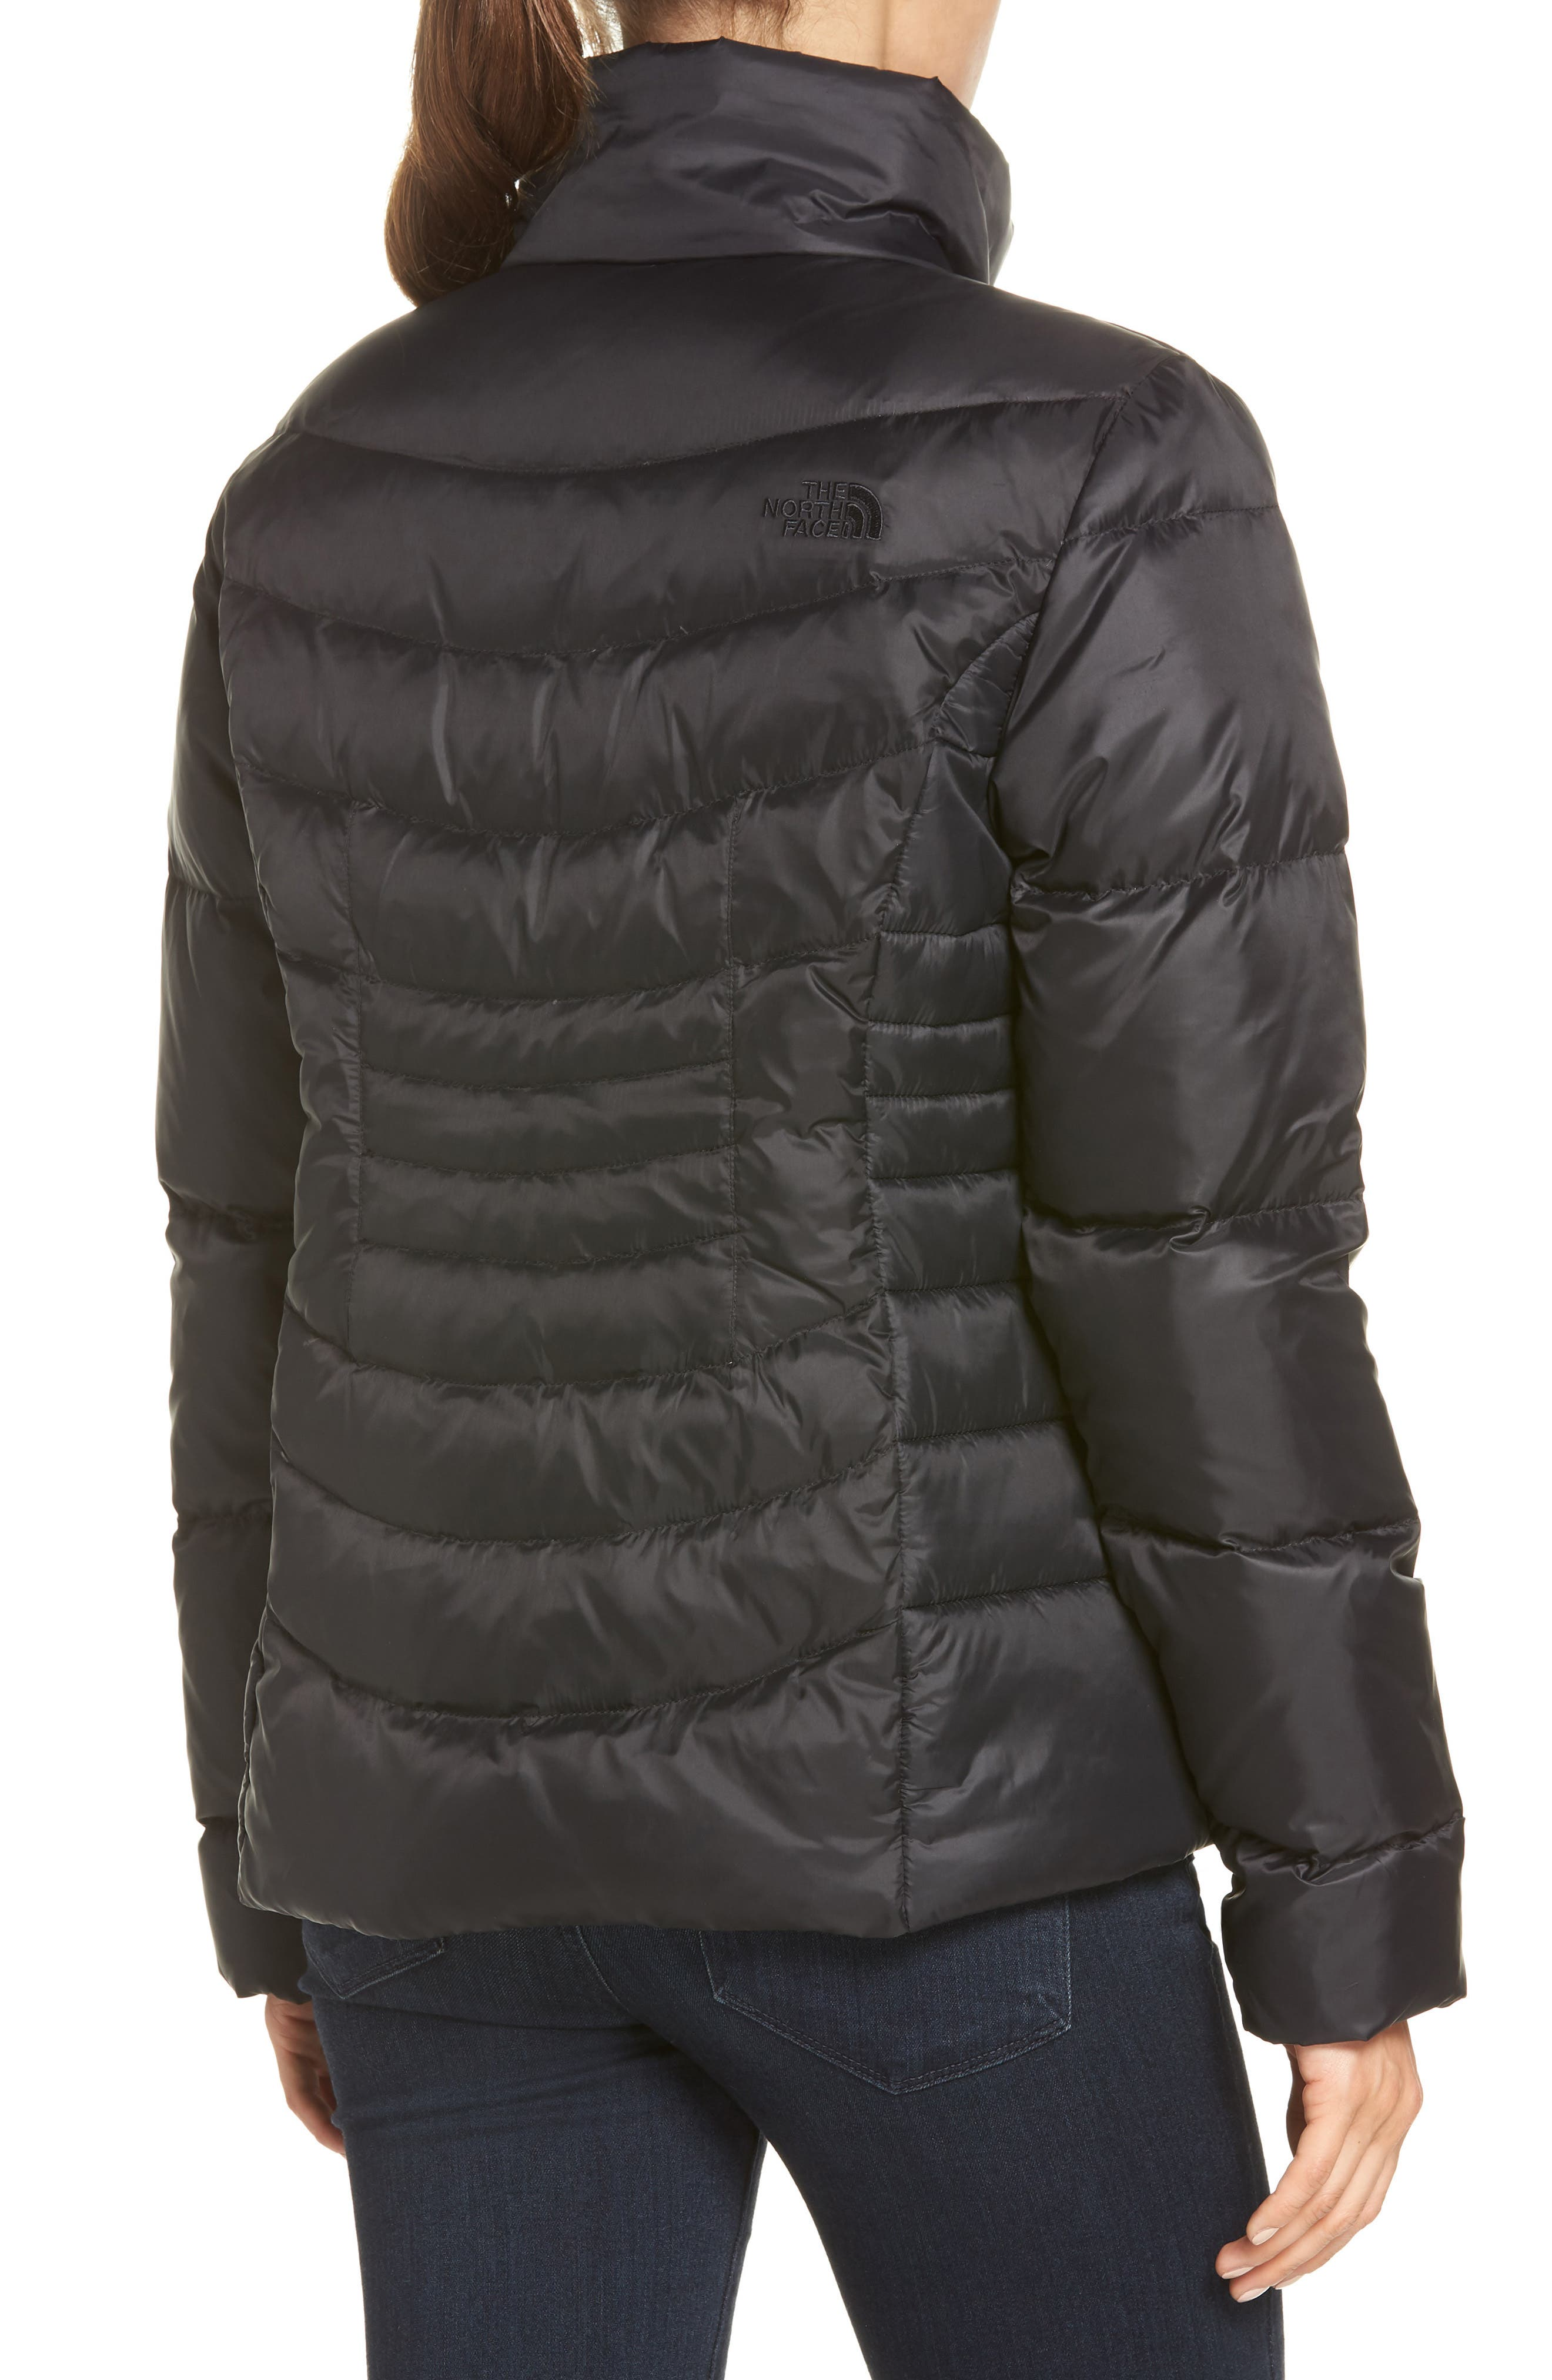 THE NORTH FACE,                             Aconcagua II Down Jacket,                             Alternate thumbnail 2, color,                             001